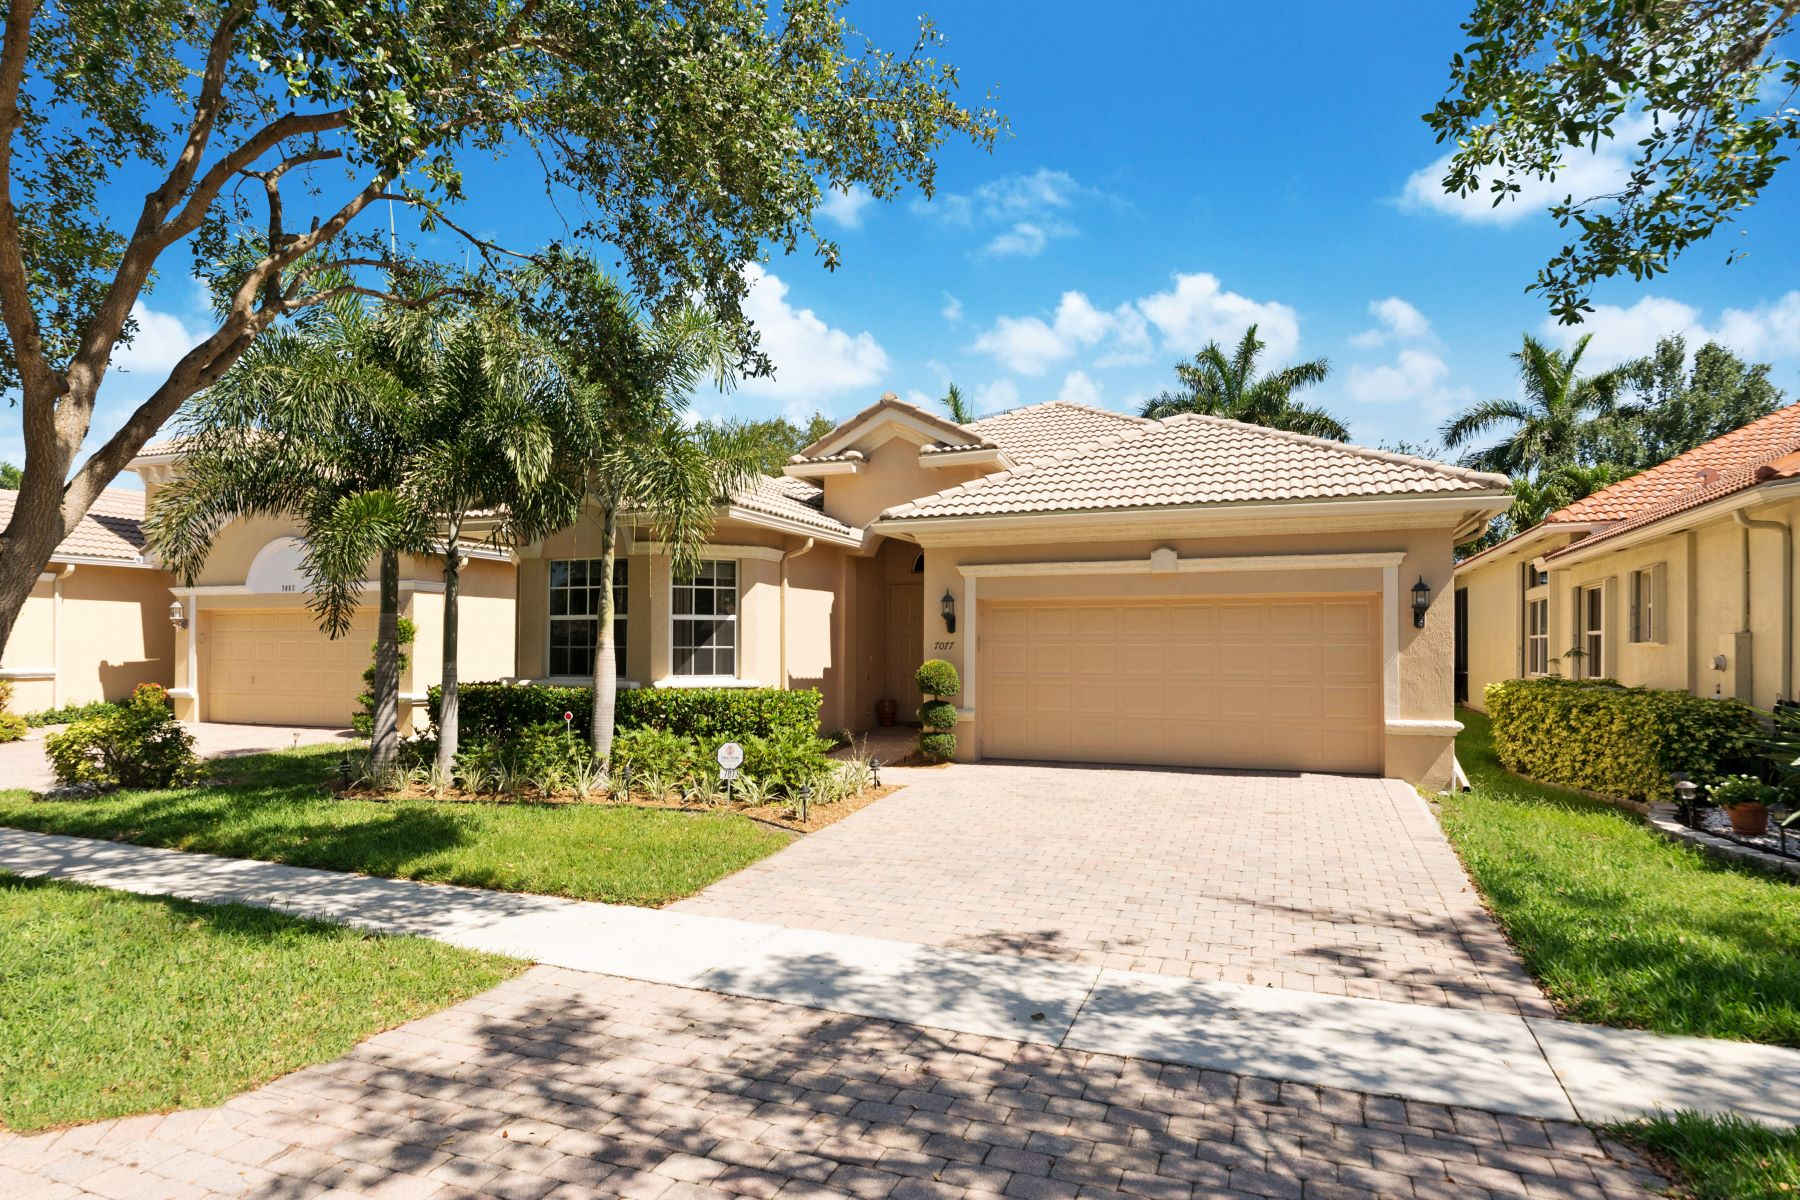 Single Family Home for Sale at 7077 Palazzo Reale Boynton Beach, Florida, 33437 United States